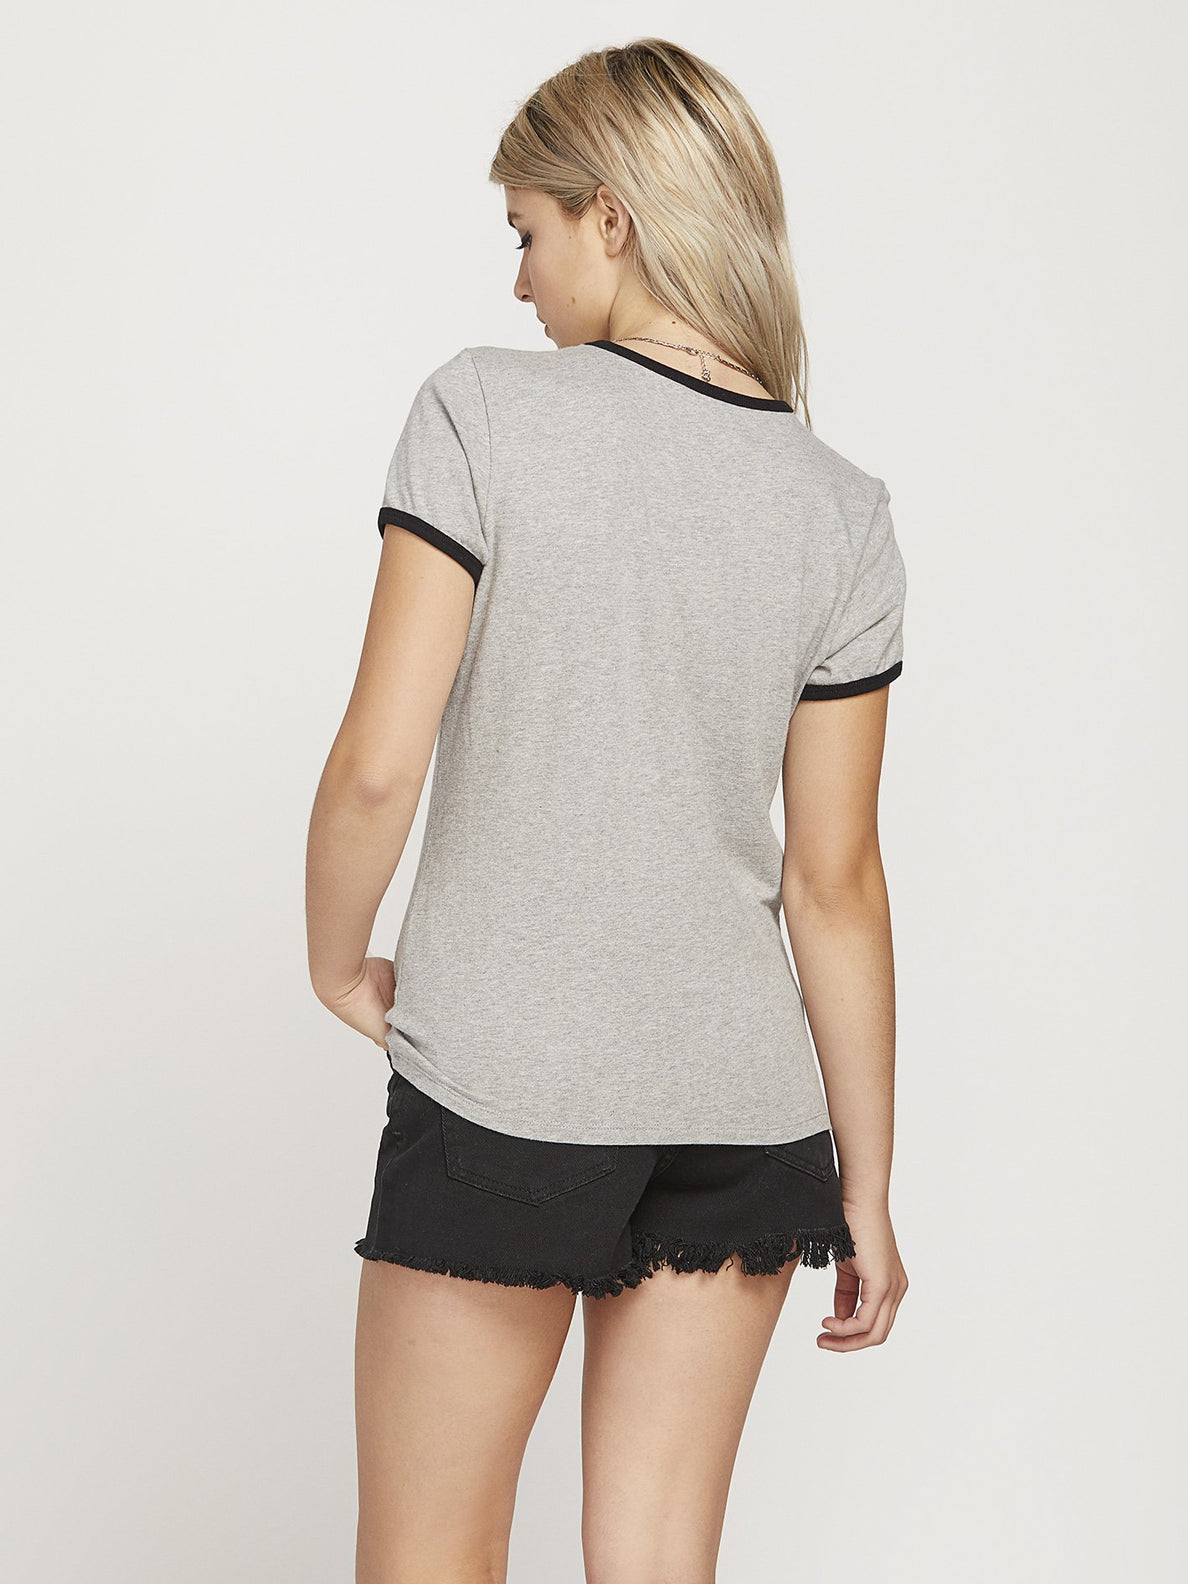 Keep Goin Ringer T-shirt  - Heather Grey